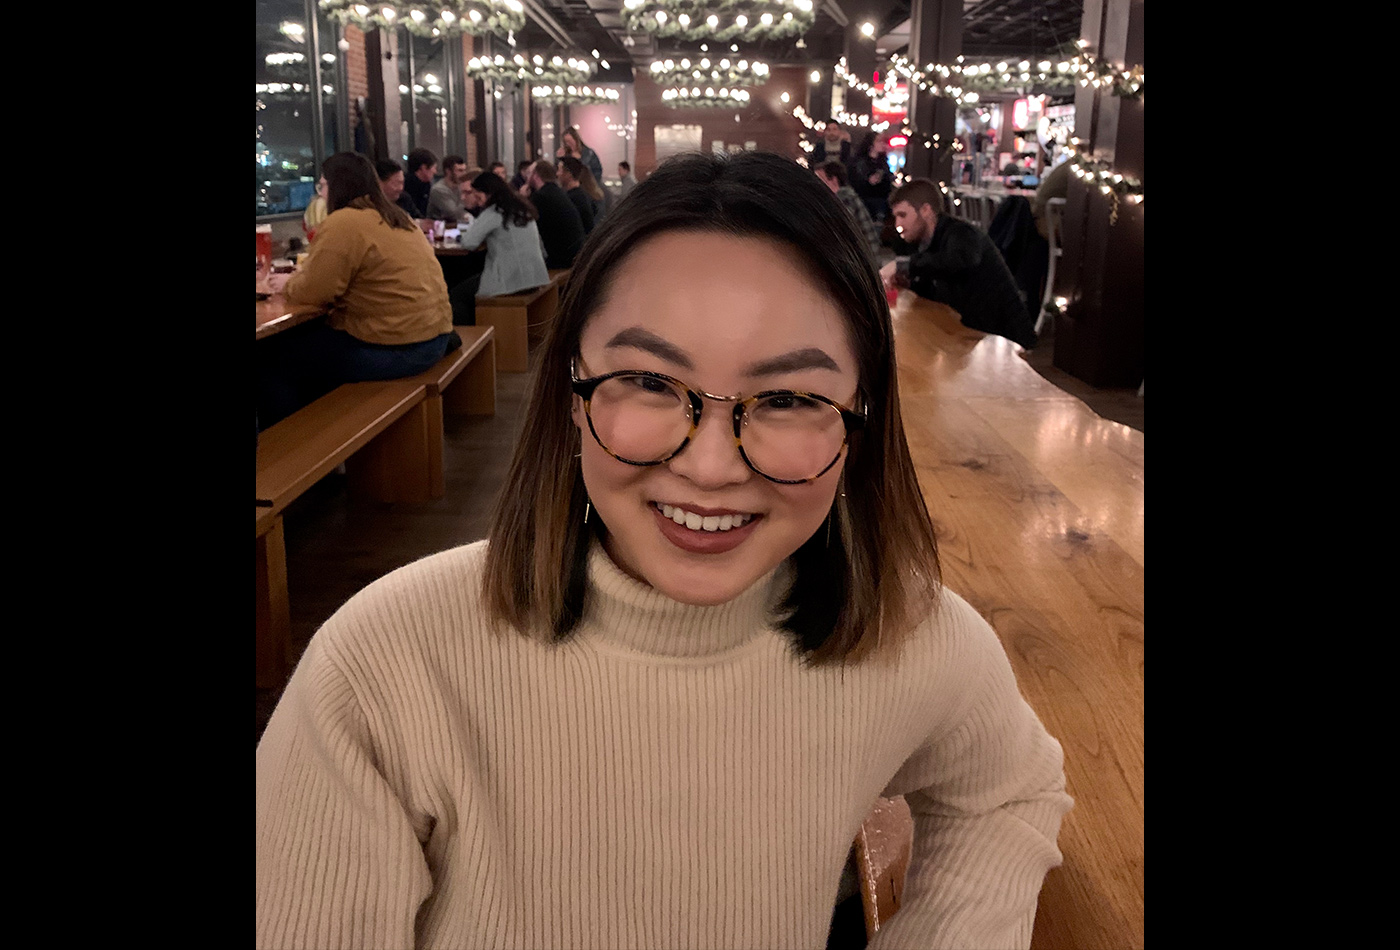 A young woman sits in a restaurant.